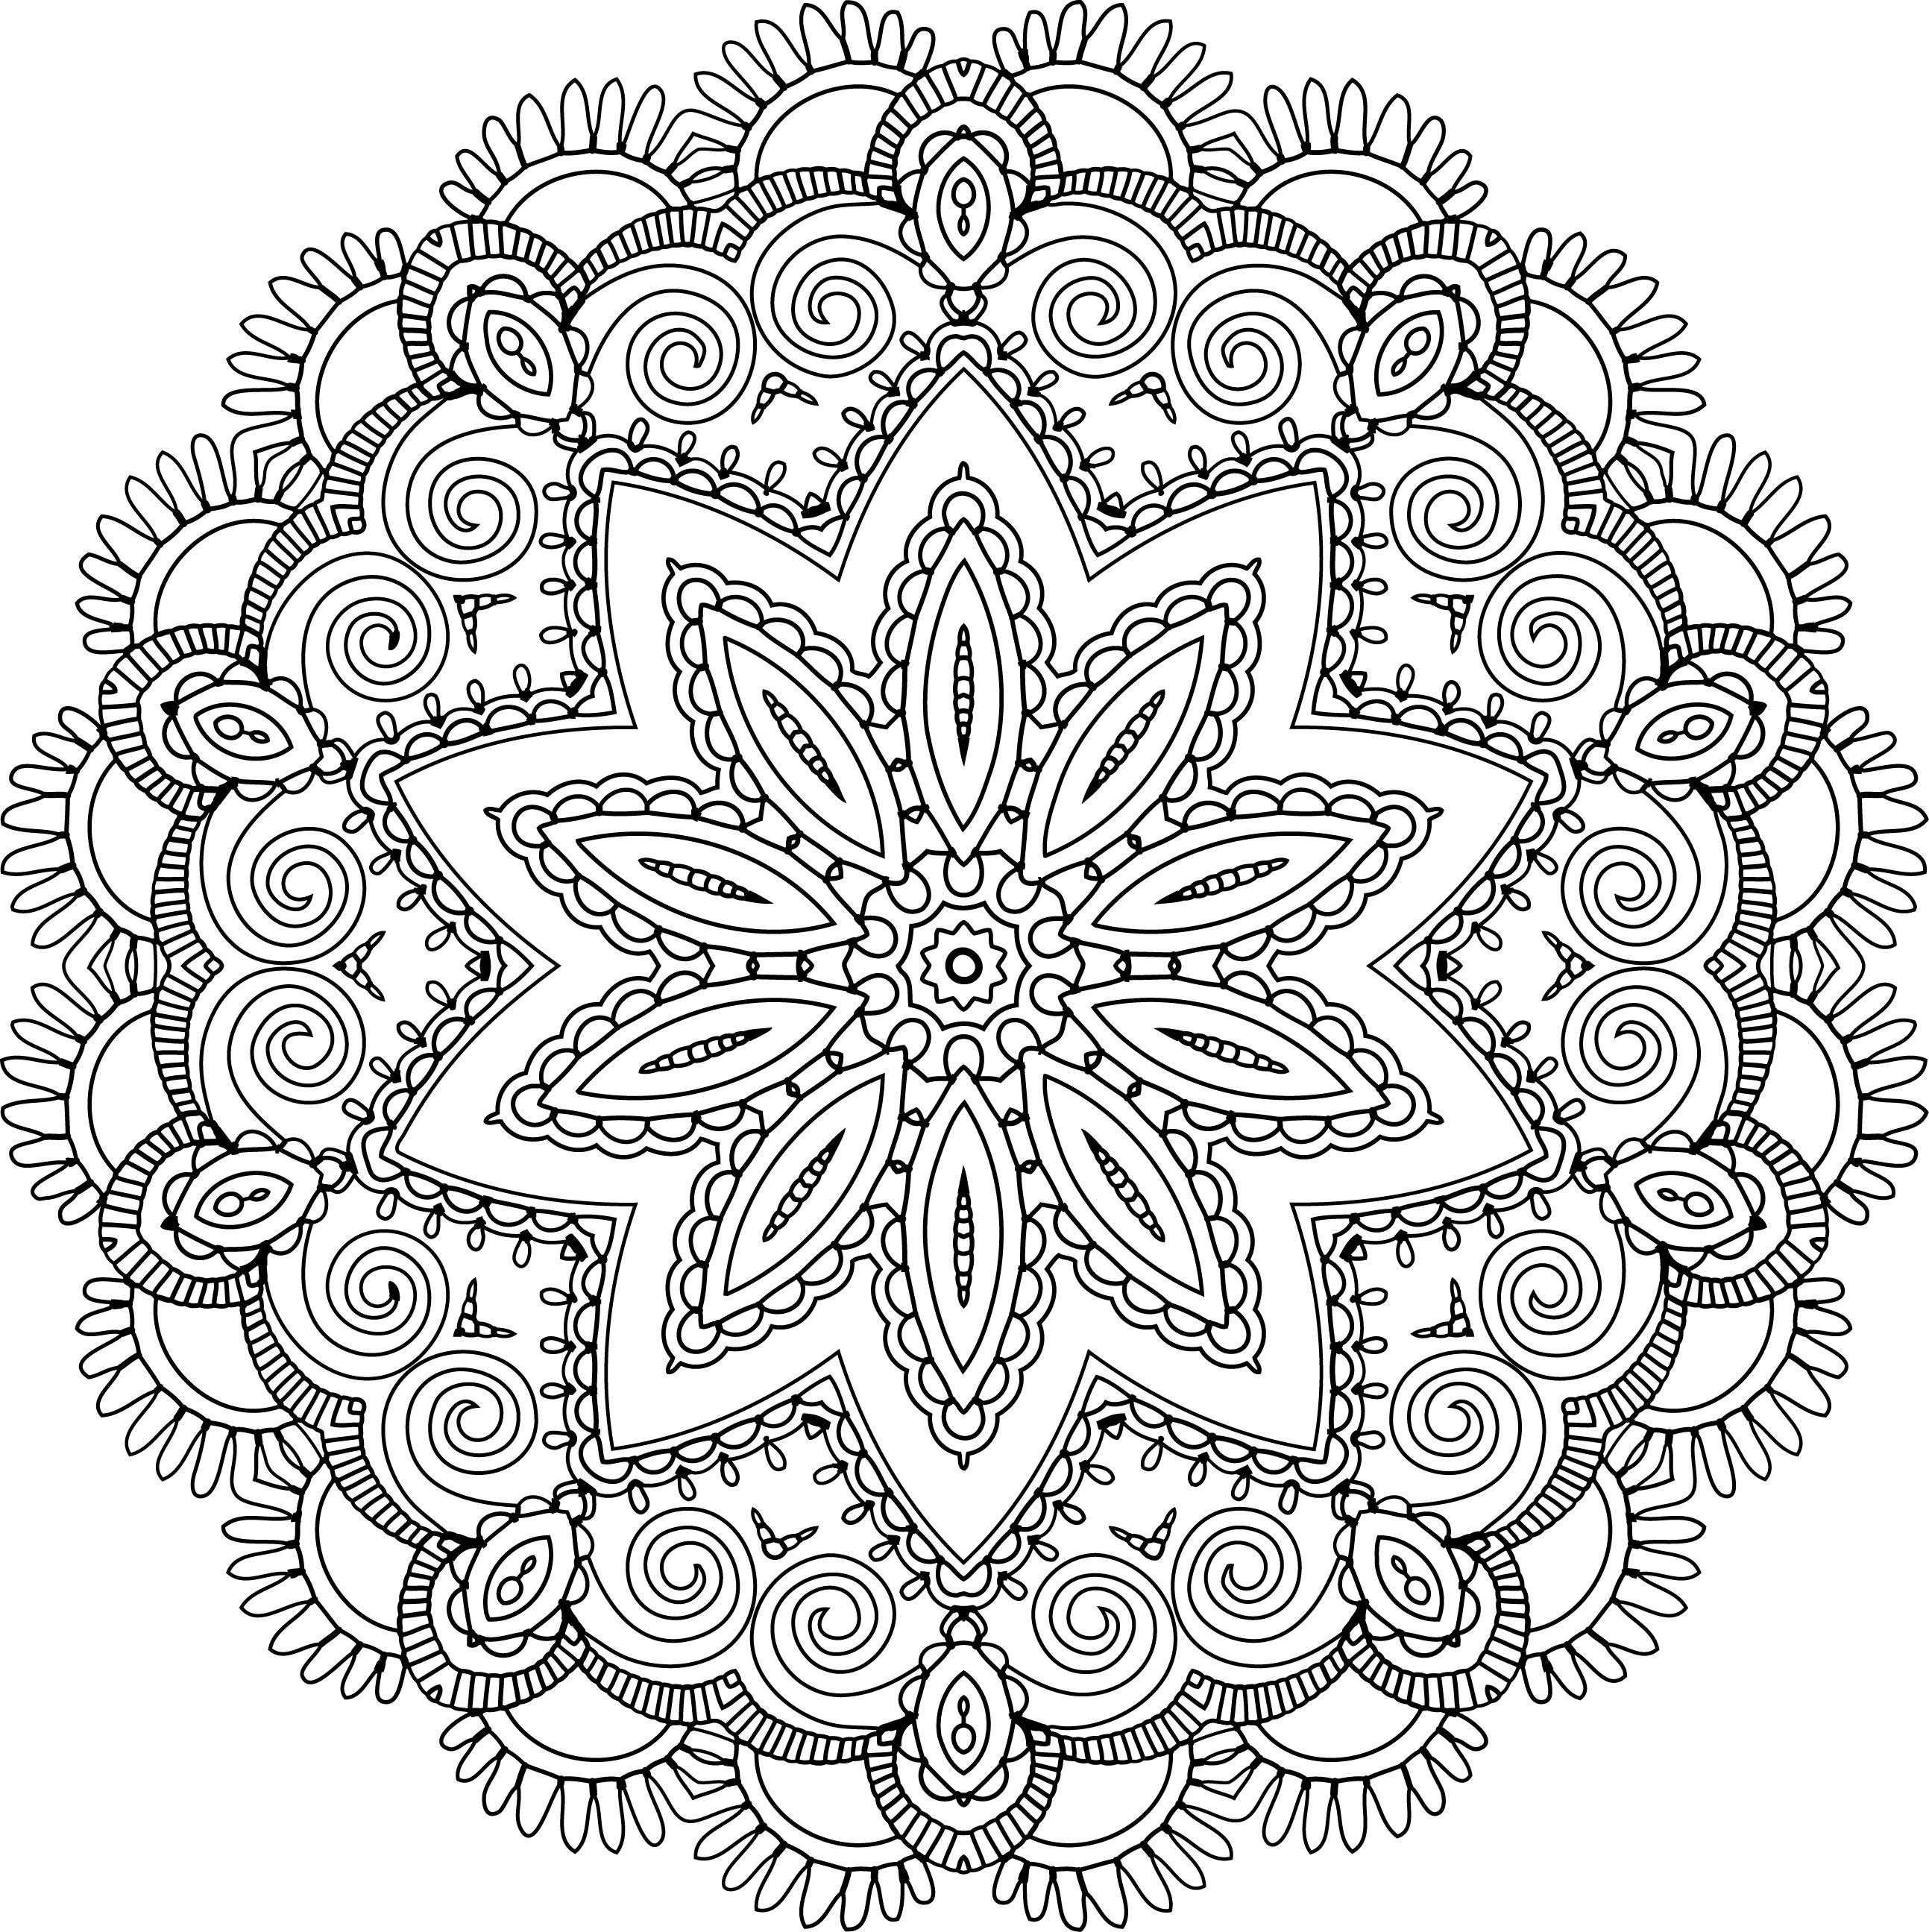 the best mandala coloring books for adults mandala coloring the best mandala coloring books for adults mandala coloring